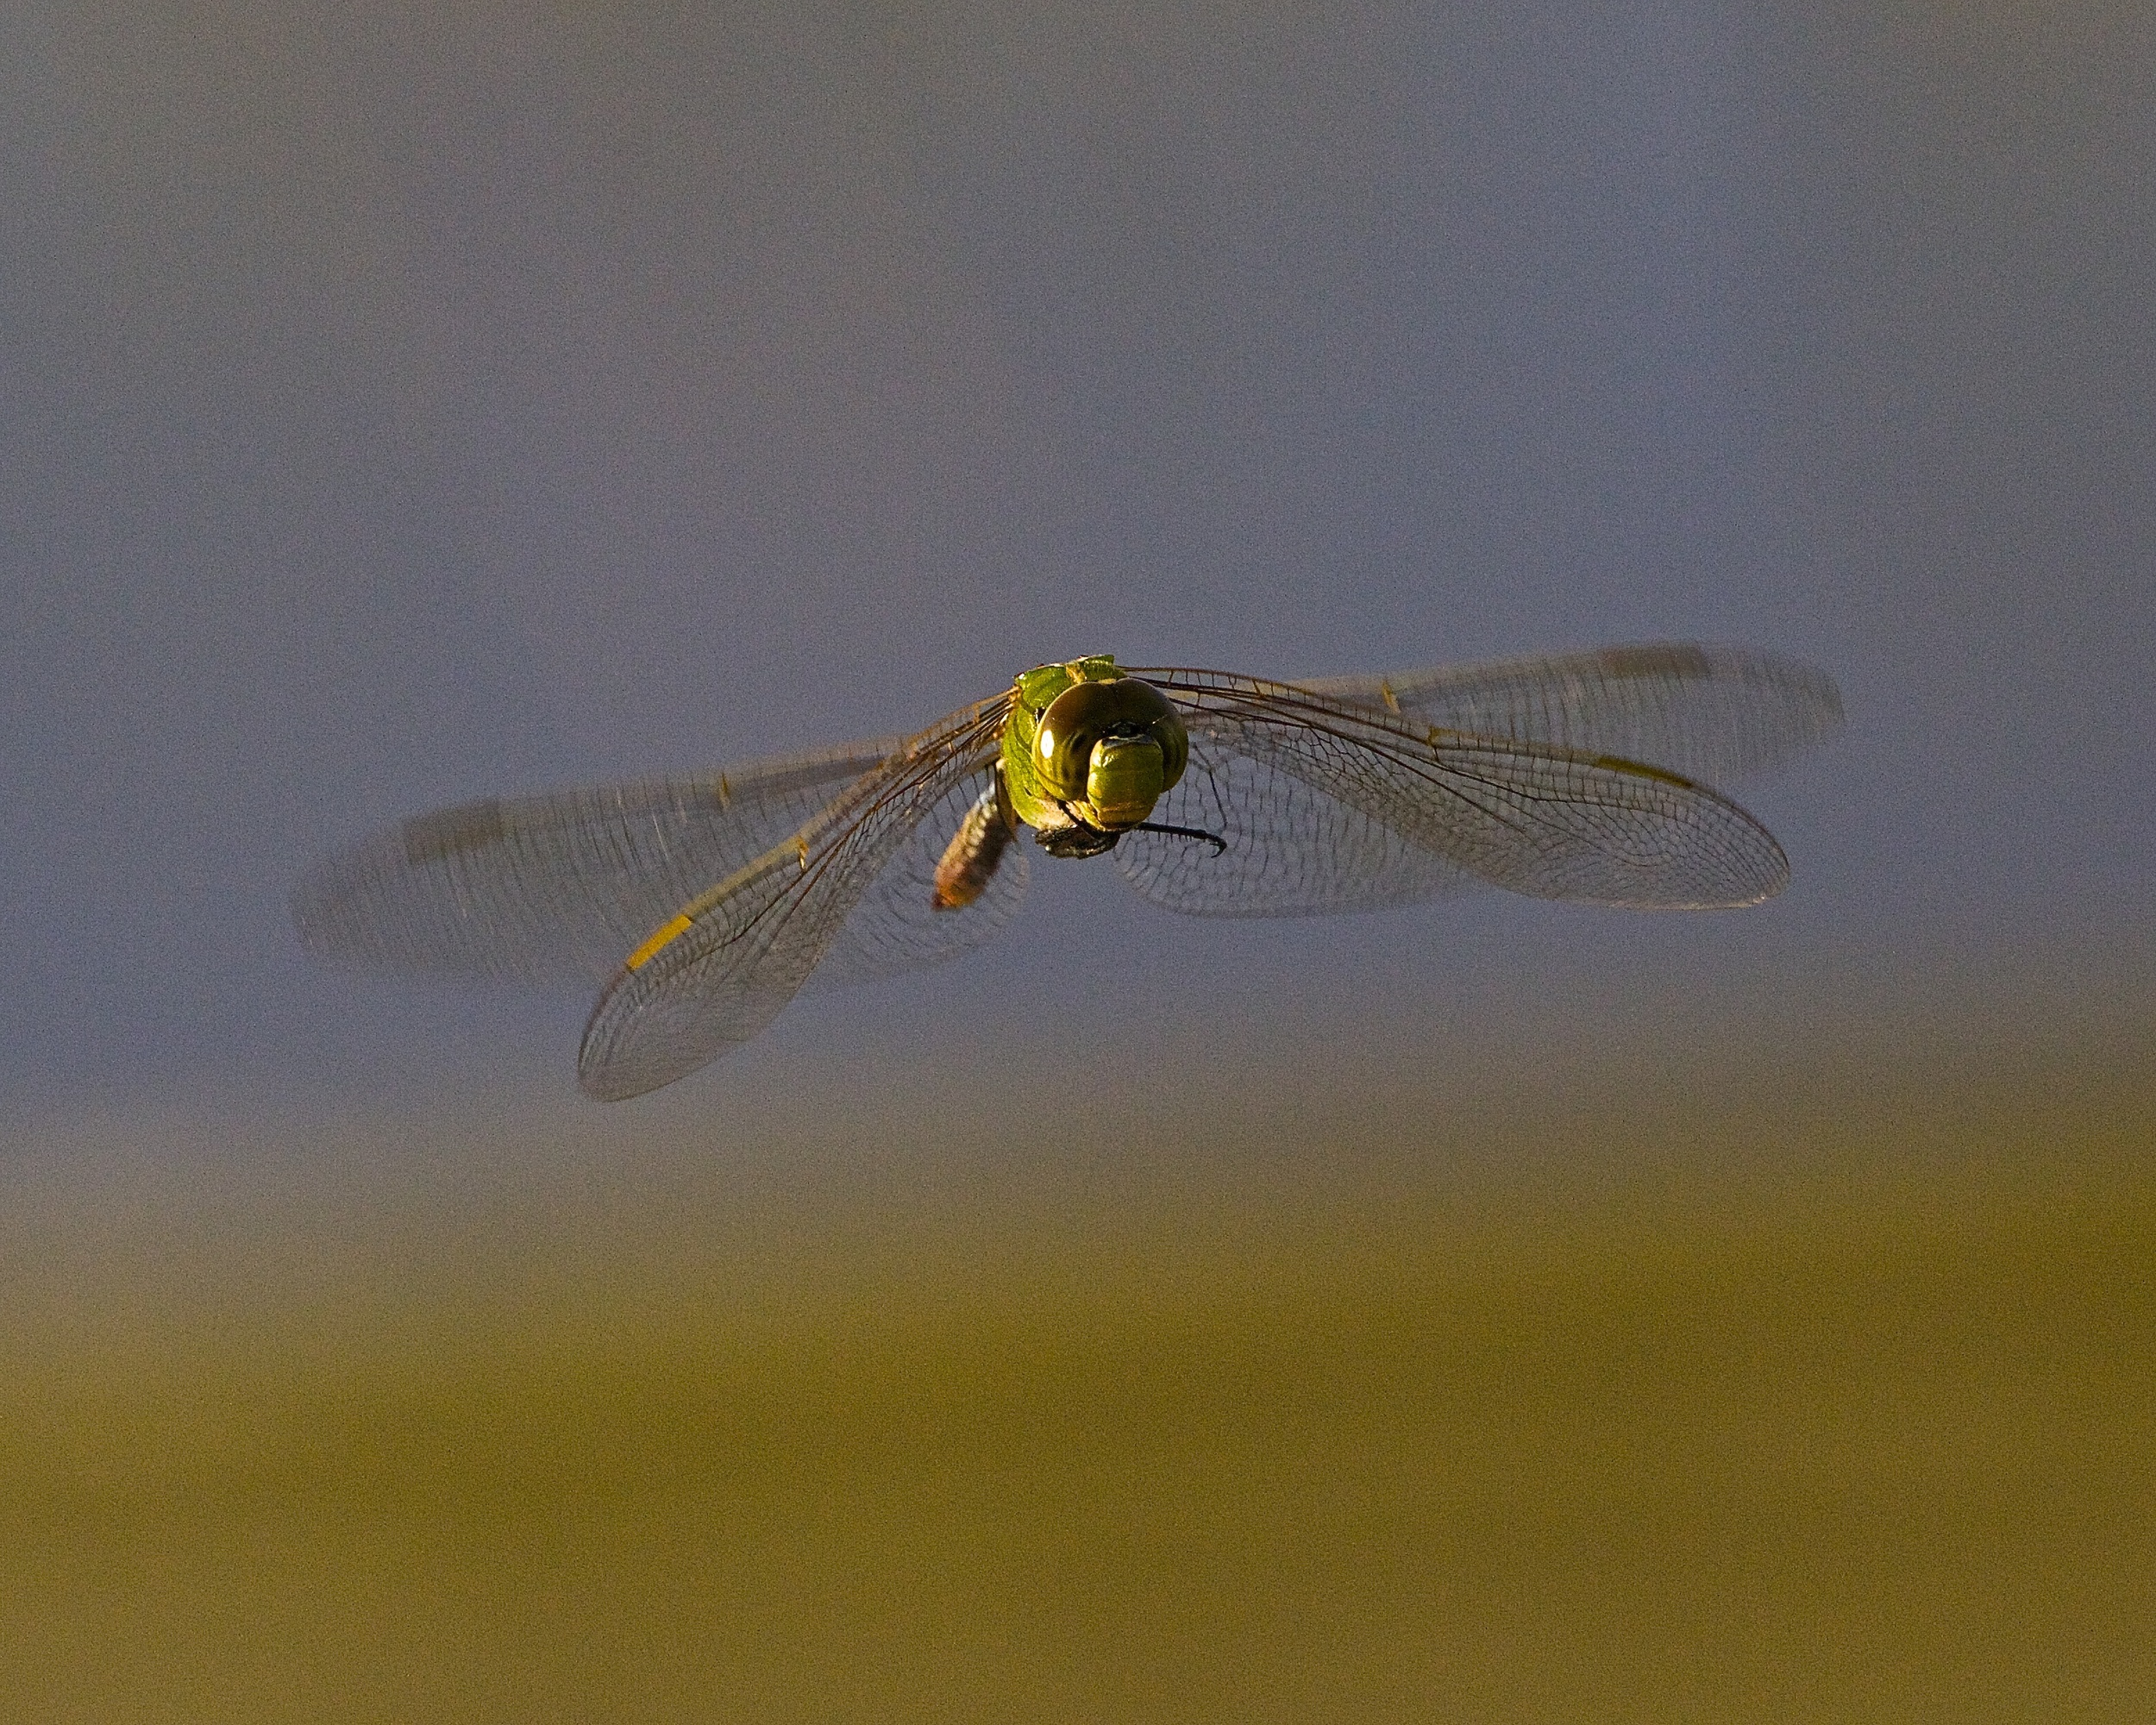 Four wings allow the Dragon Fly to hover, move sideways, backward and forward at speeds up to 30 miles per hour.